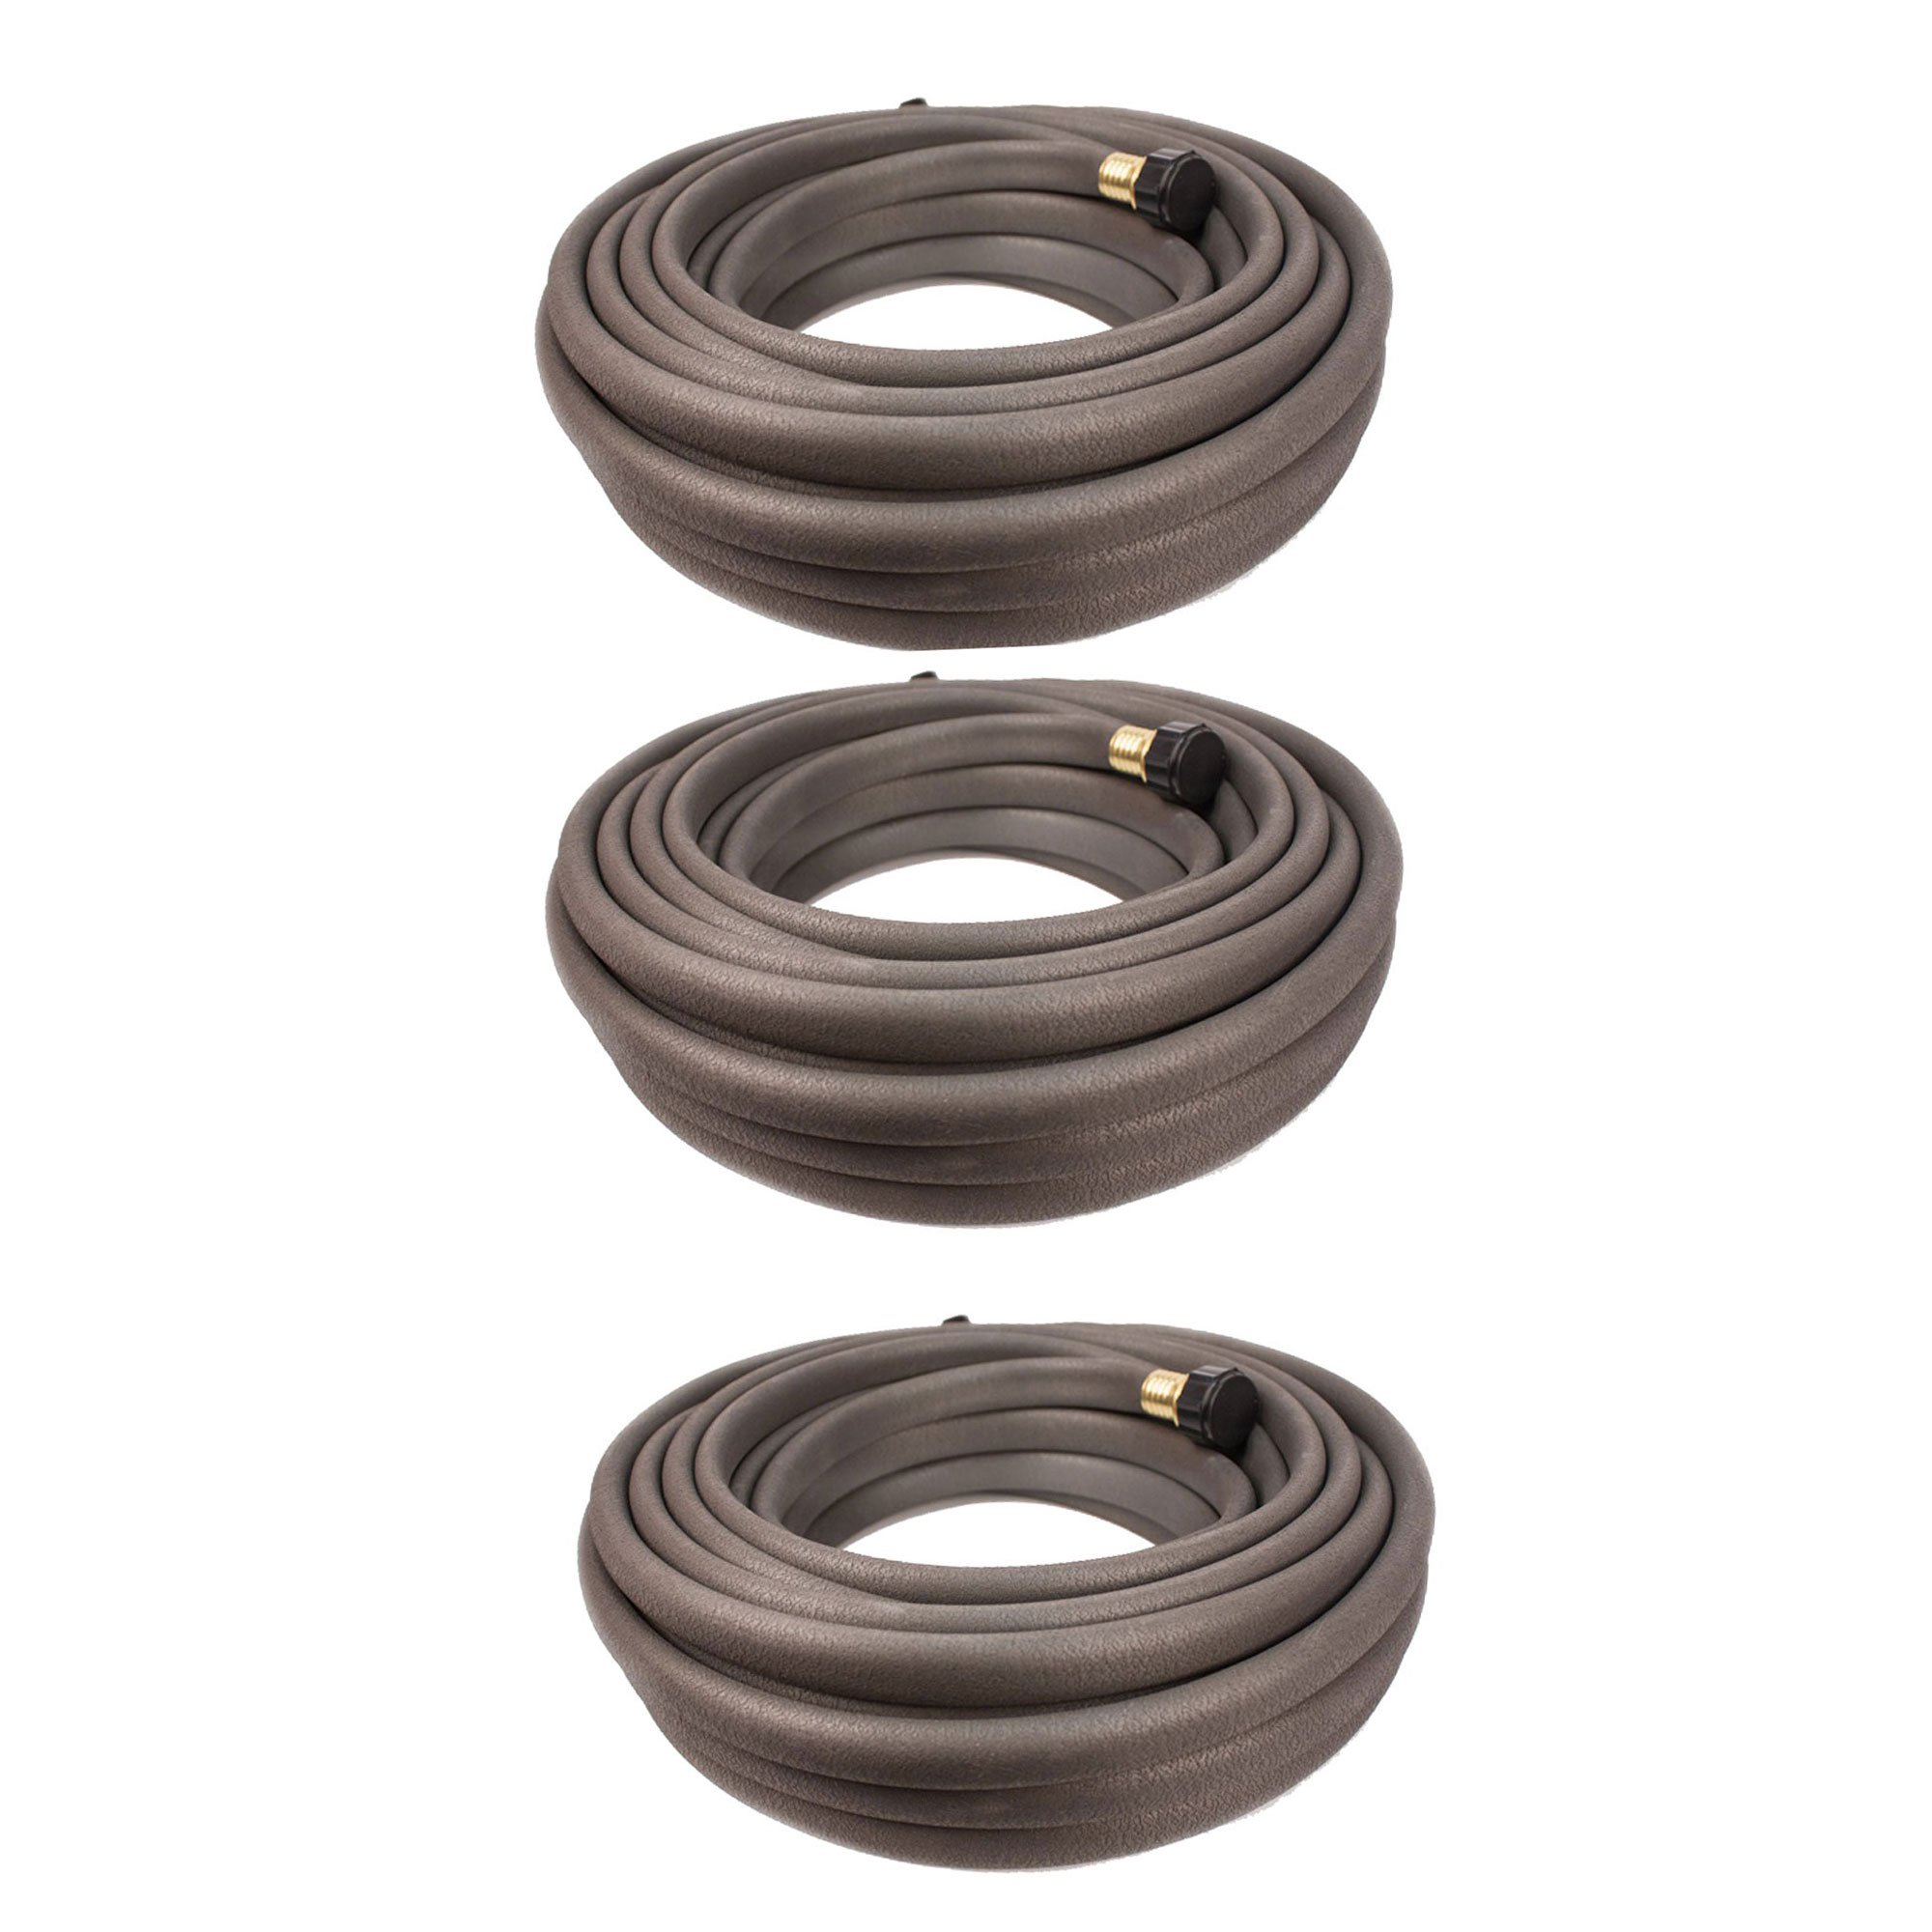 Apex 100 Foot Long Flexible Water Conservation Garden Area Soaker Hose (3 Pack)